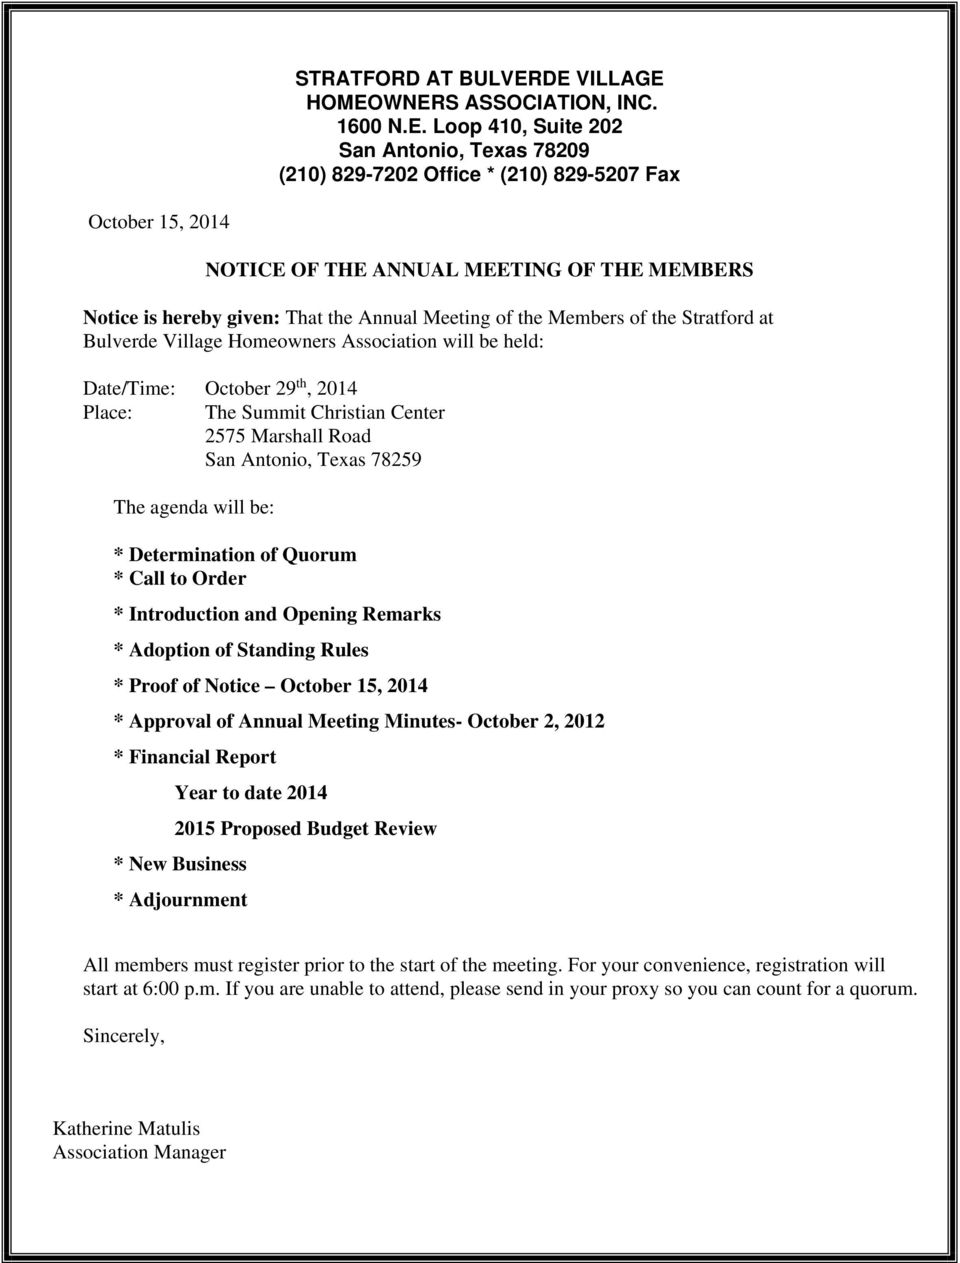 Notice is hereby given: That the Annual Meeting of the Members of the Stratford at Bulverde Village Homeowners Association will be held: Date/Time: October 29 th, 2014 Place: The Summit Christian